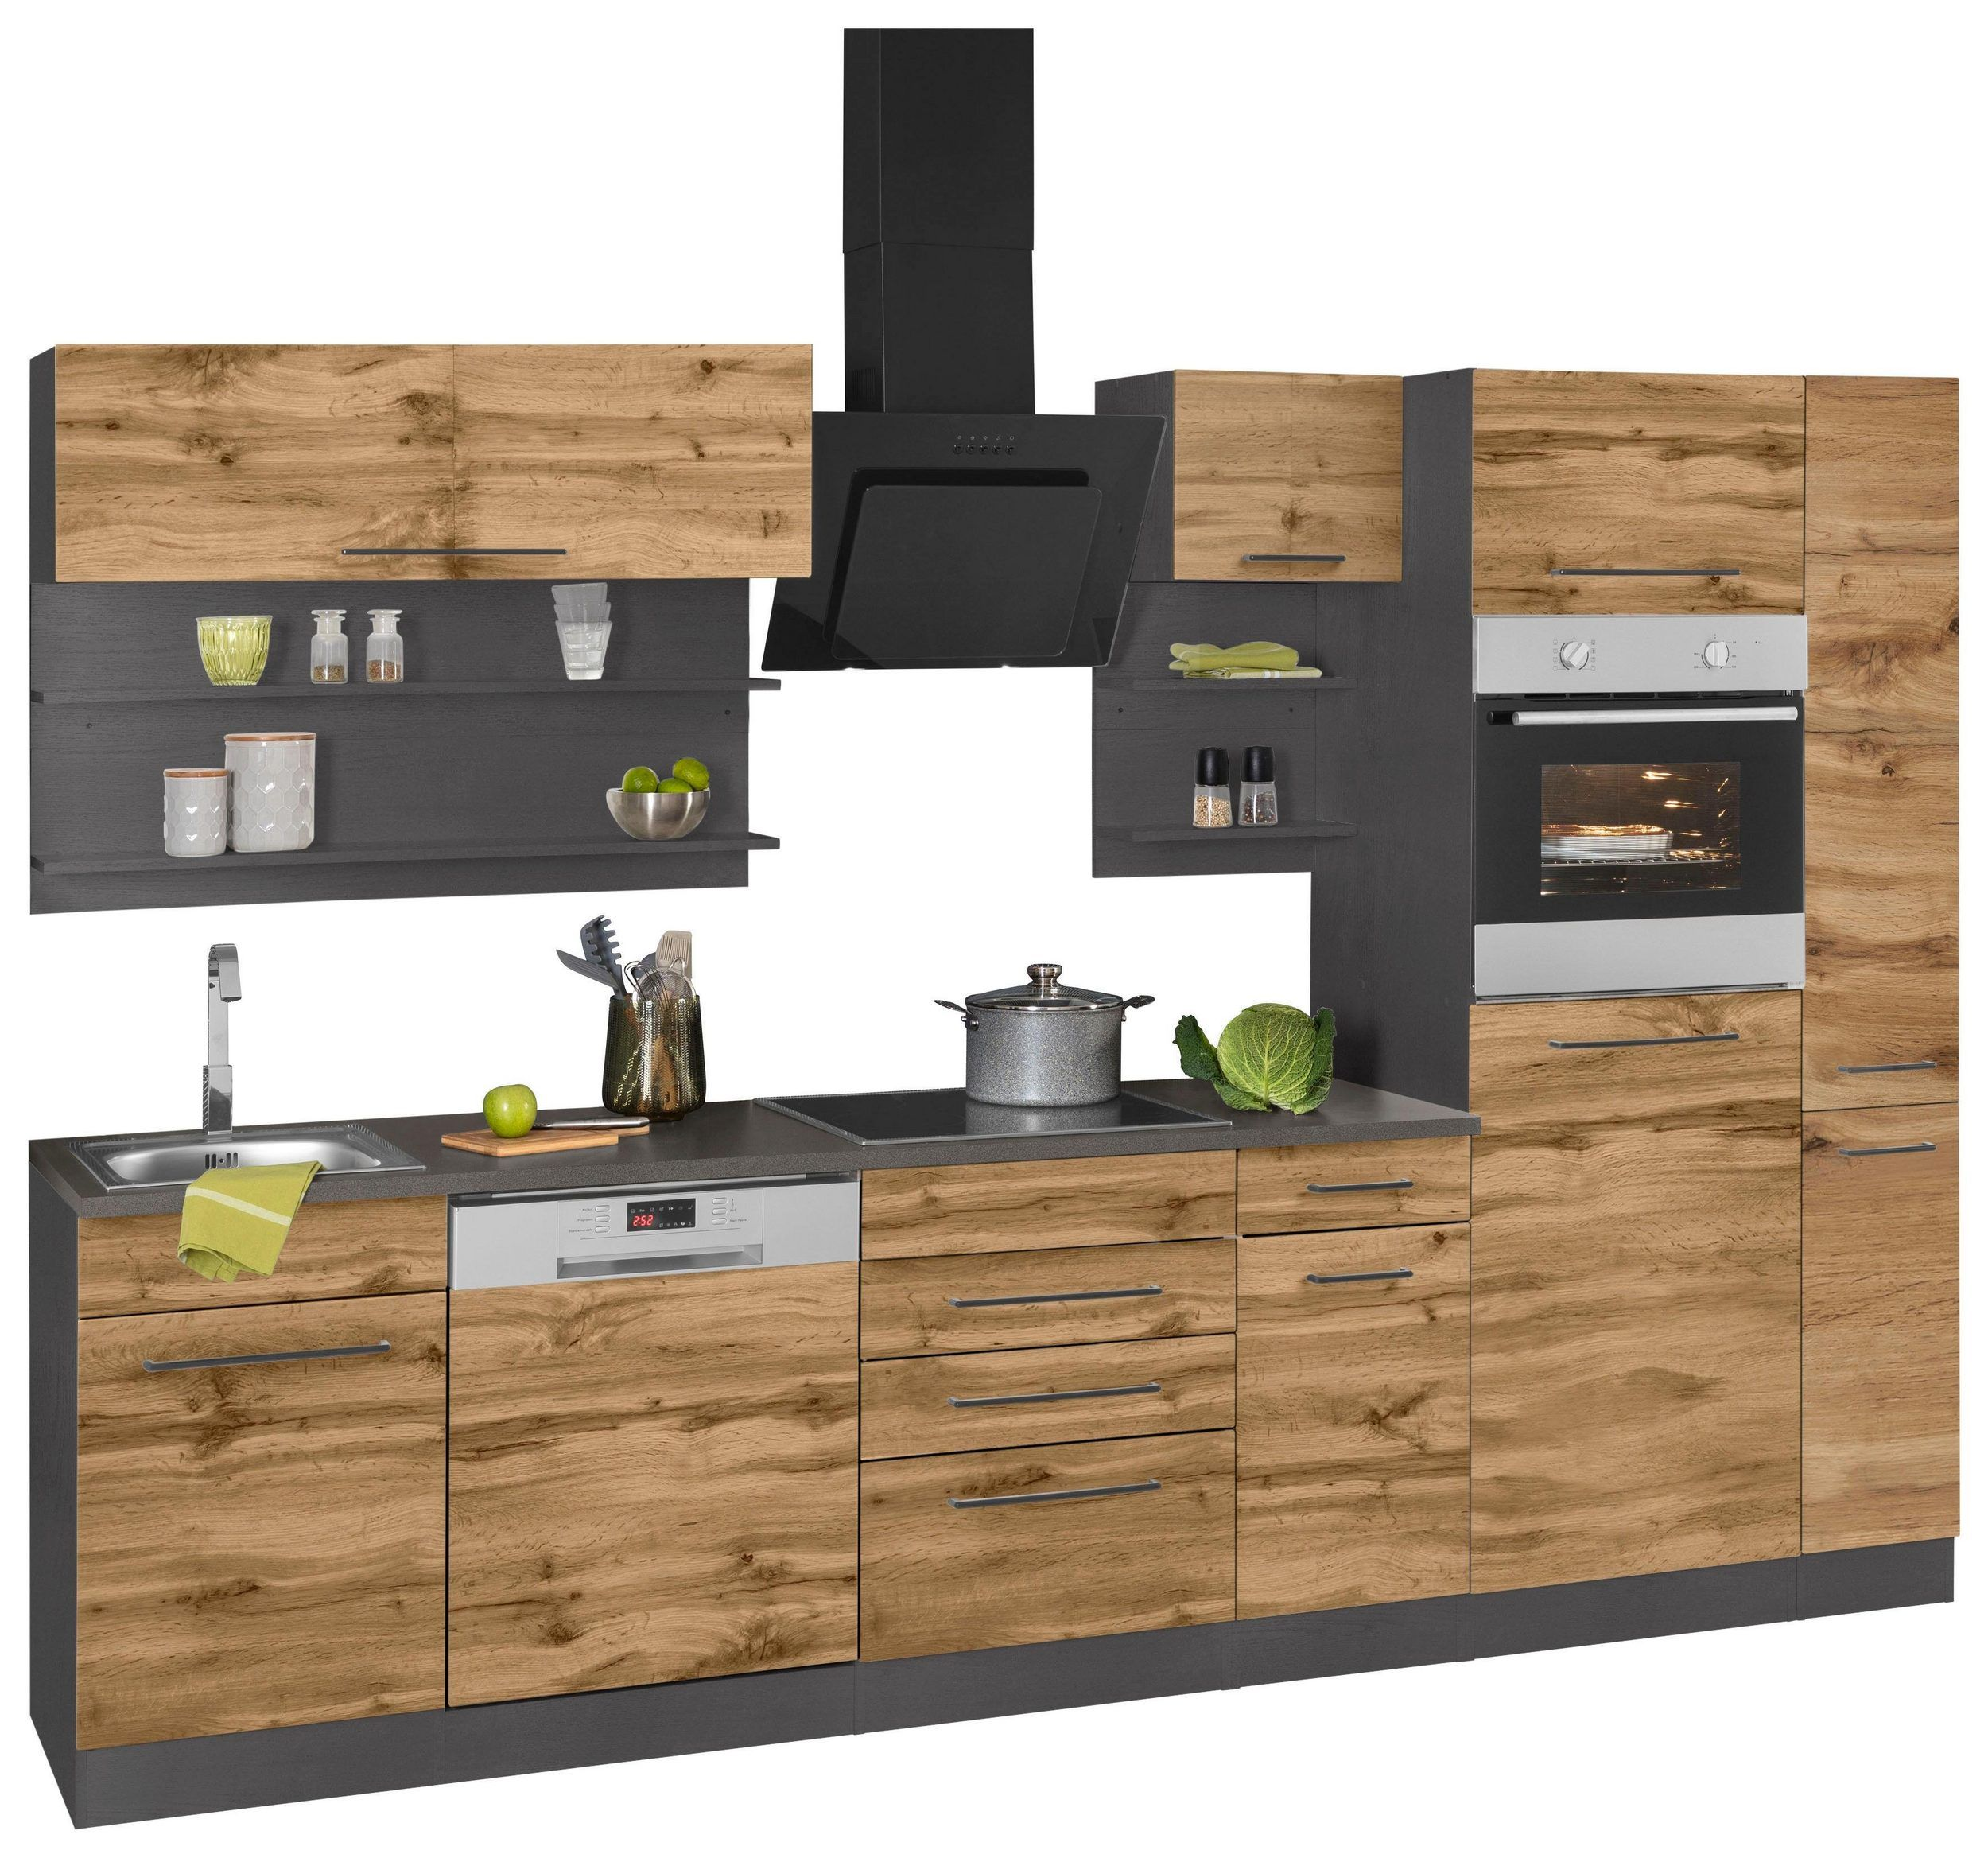 Held Mobel Held Kitchen Cabinets Kitchen Fittings Kitchen Cabinets Oak Color